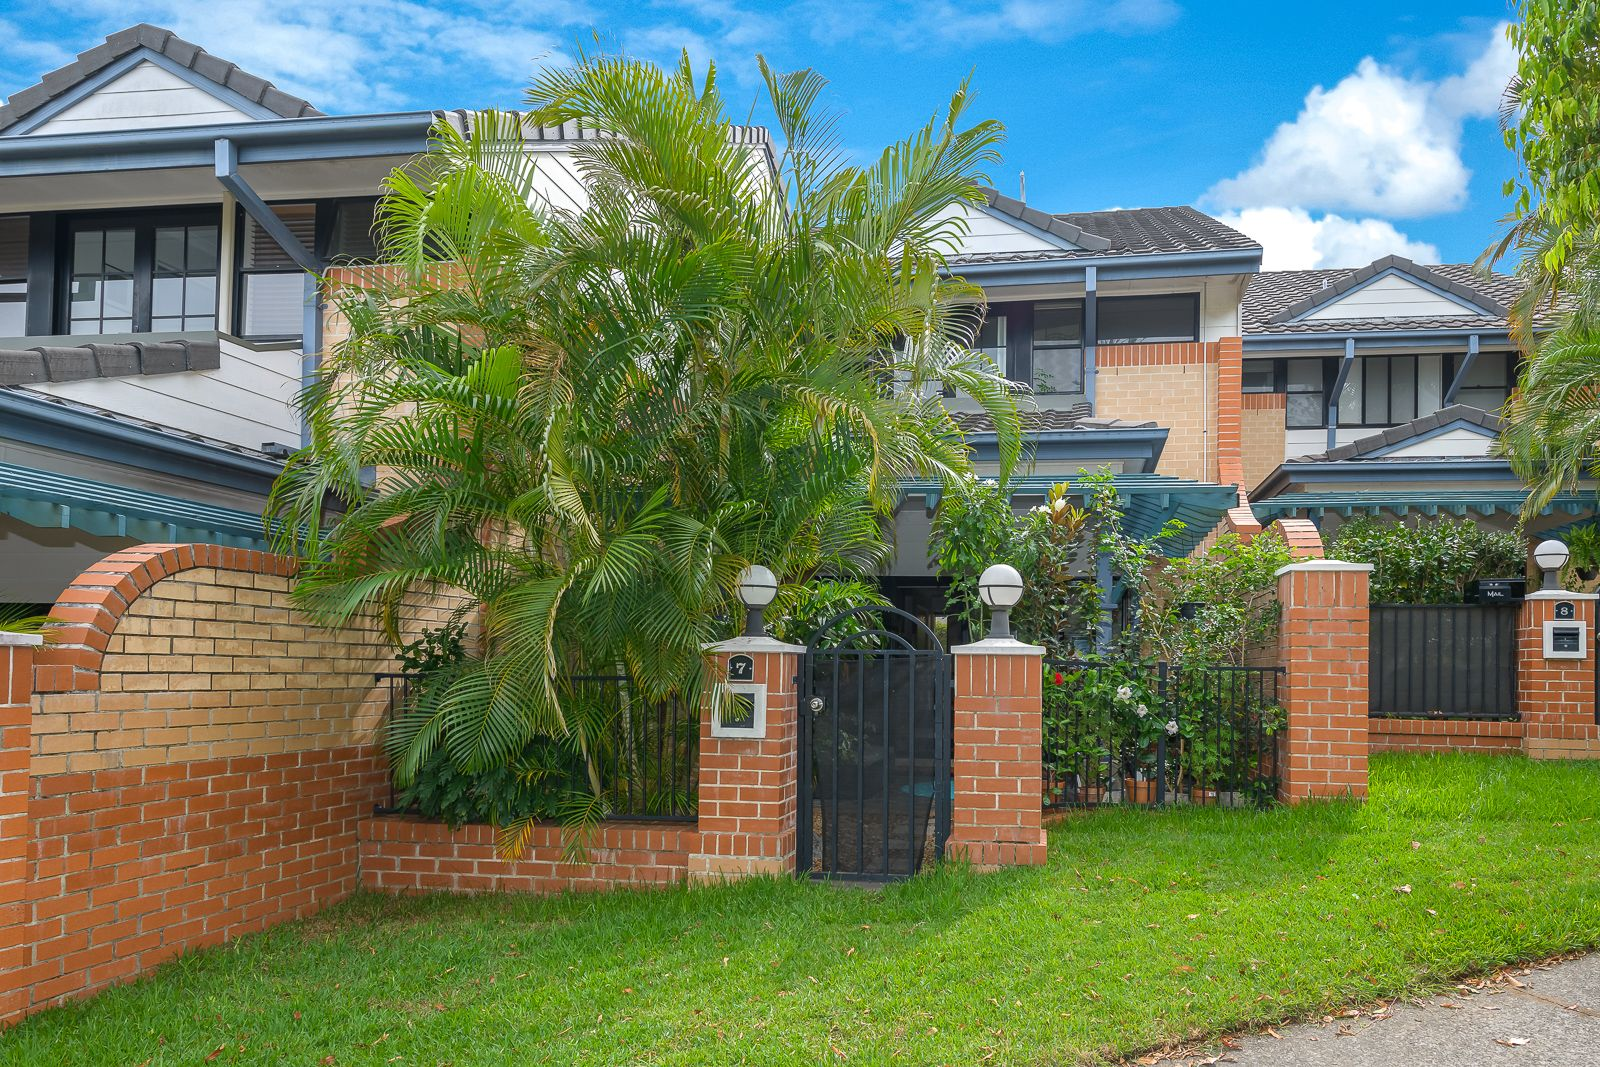 7/1 Hillridge Crescent, Varsity Lakes QLD 4227, Image 0